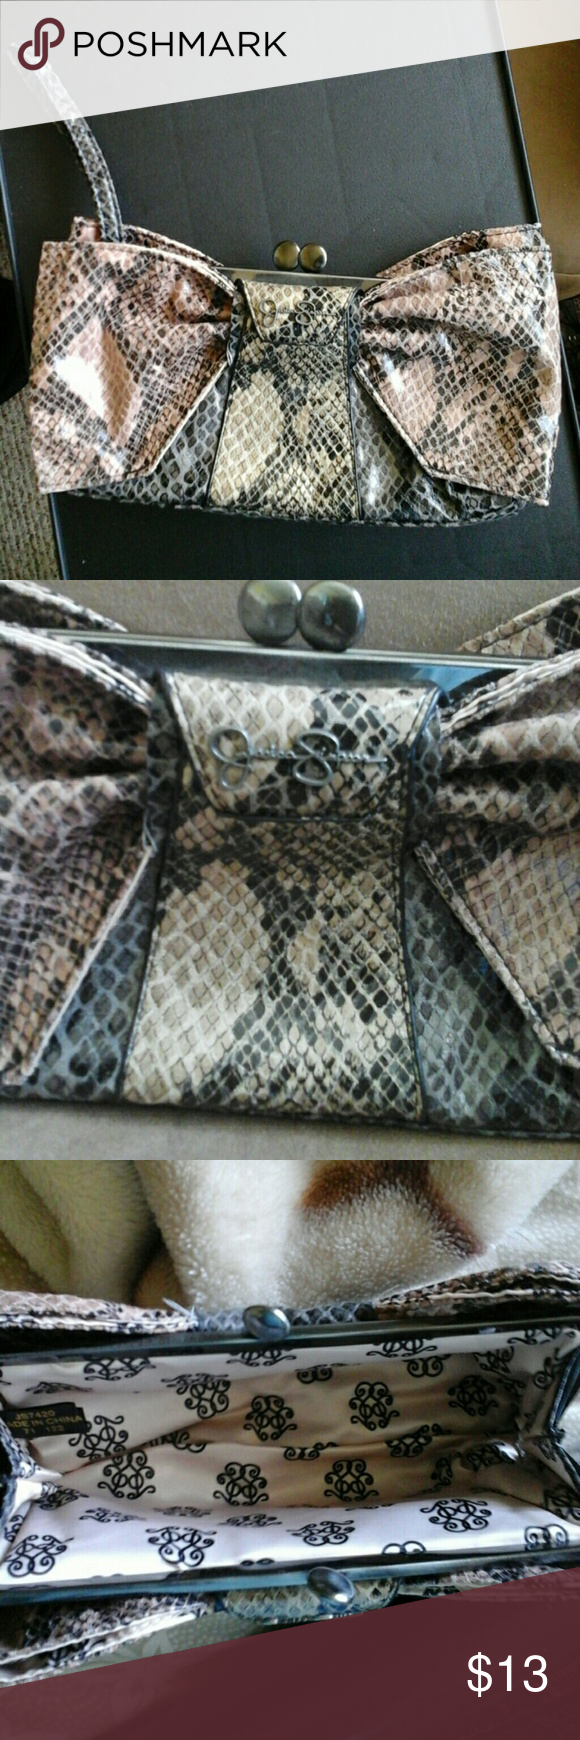 Jessica Simpson Clutch Tri-color snake skin print Jessica Simpson Clutch with wrist strap and snap closure. The bows for back and front are beige/pink,where it says Jessica Simpson is dark yellow and the base is greyish black. Very cute and roomy. Only used once. It's 8 inches long, 4 inches tall and width is about 2 to 3 inches. Jessica Simpson Bags Clutches & Wristlets